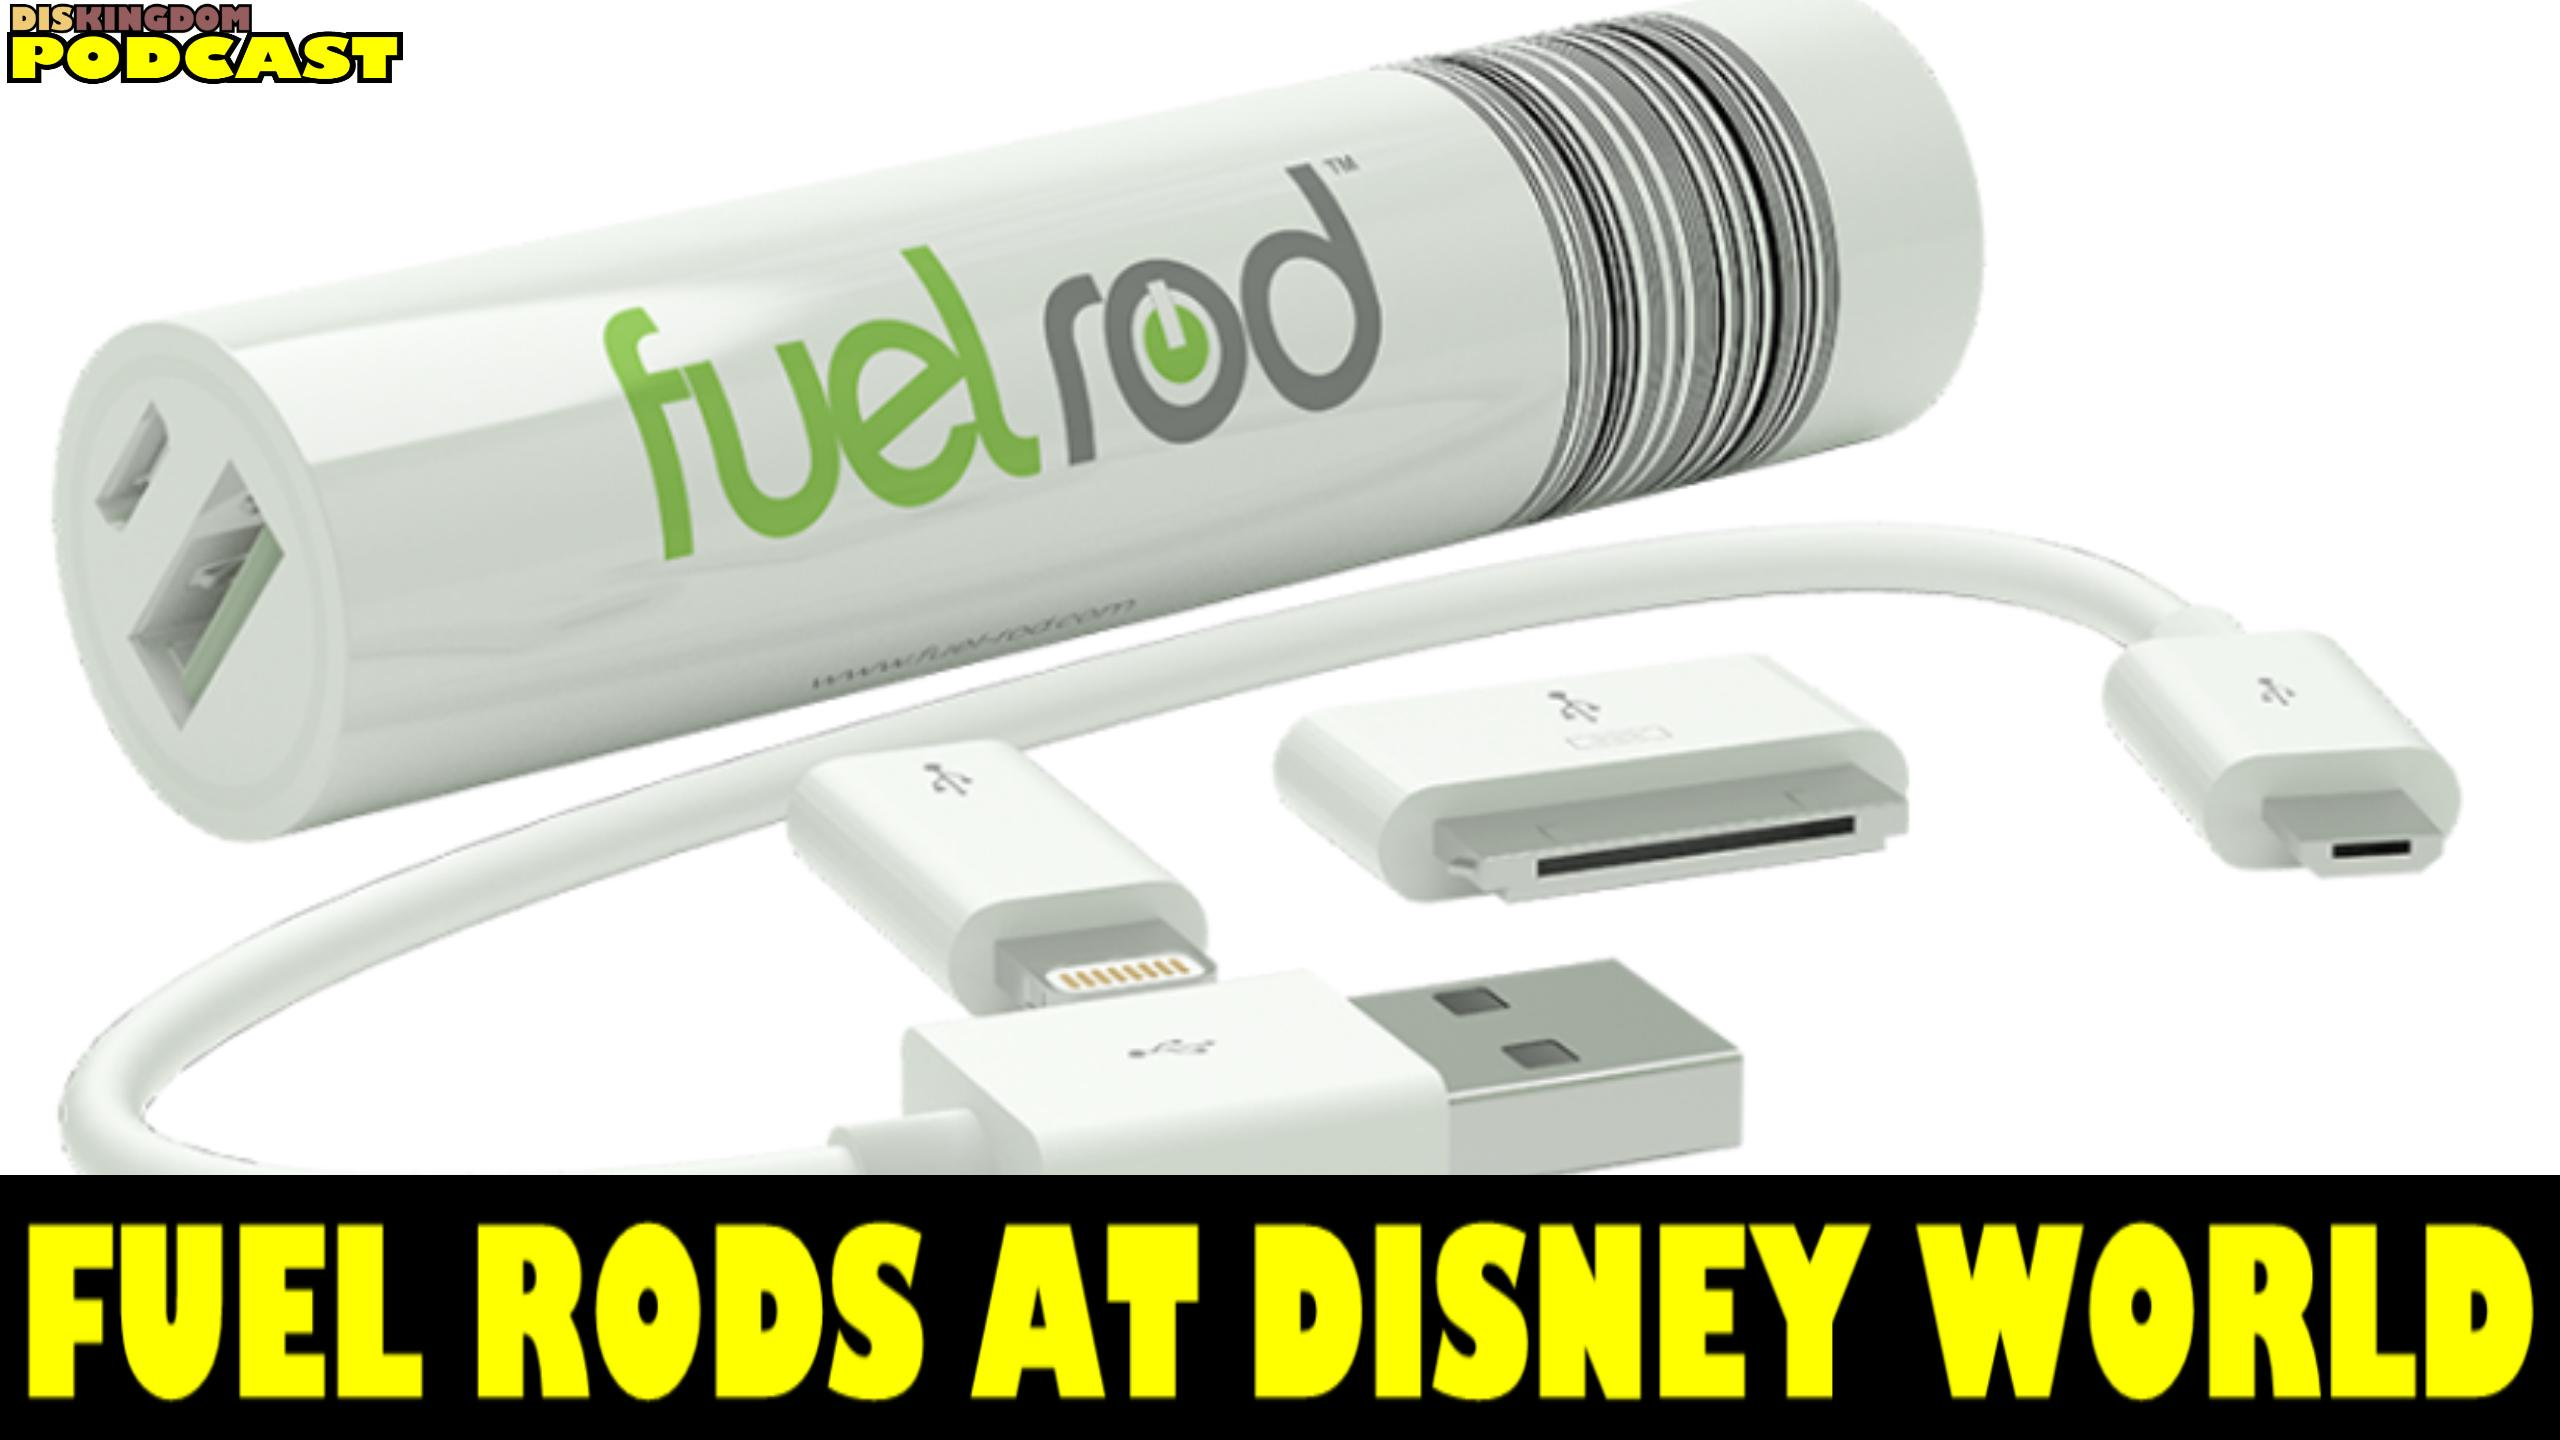 More Fuel Rod Locations Come To Walt Disney World | DisKingdom Podcast